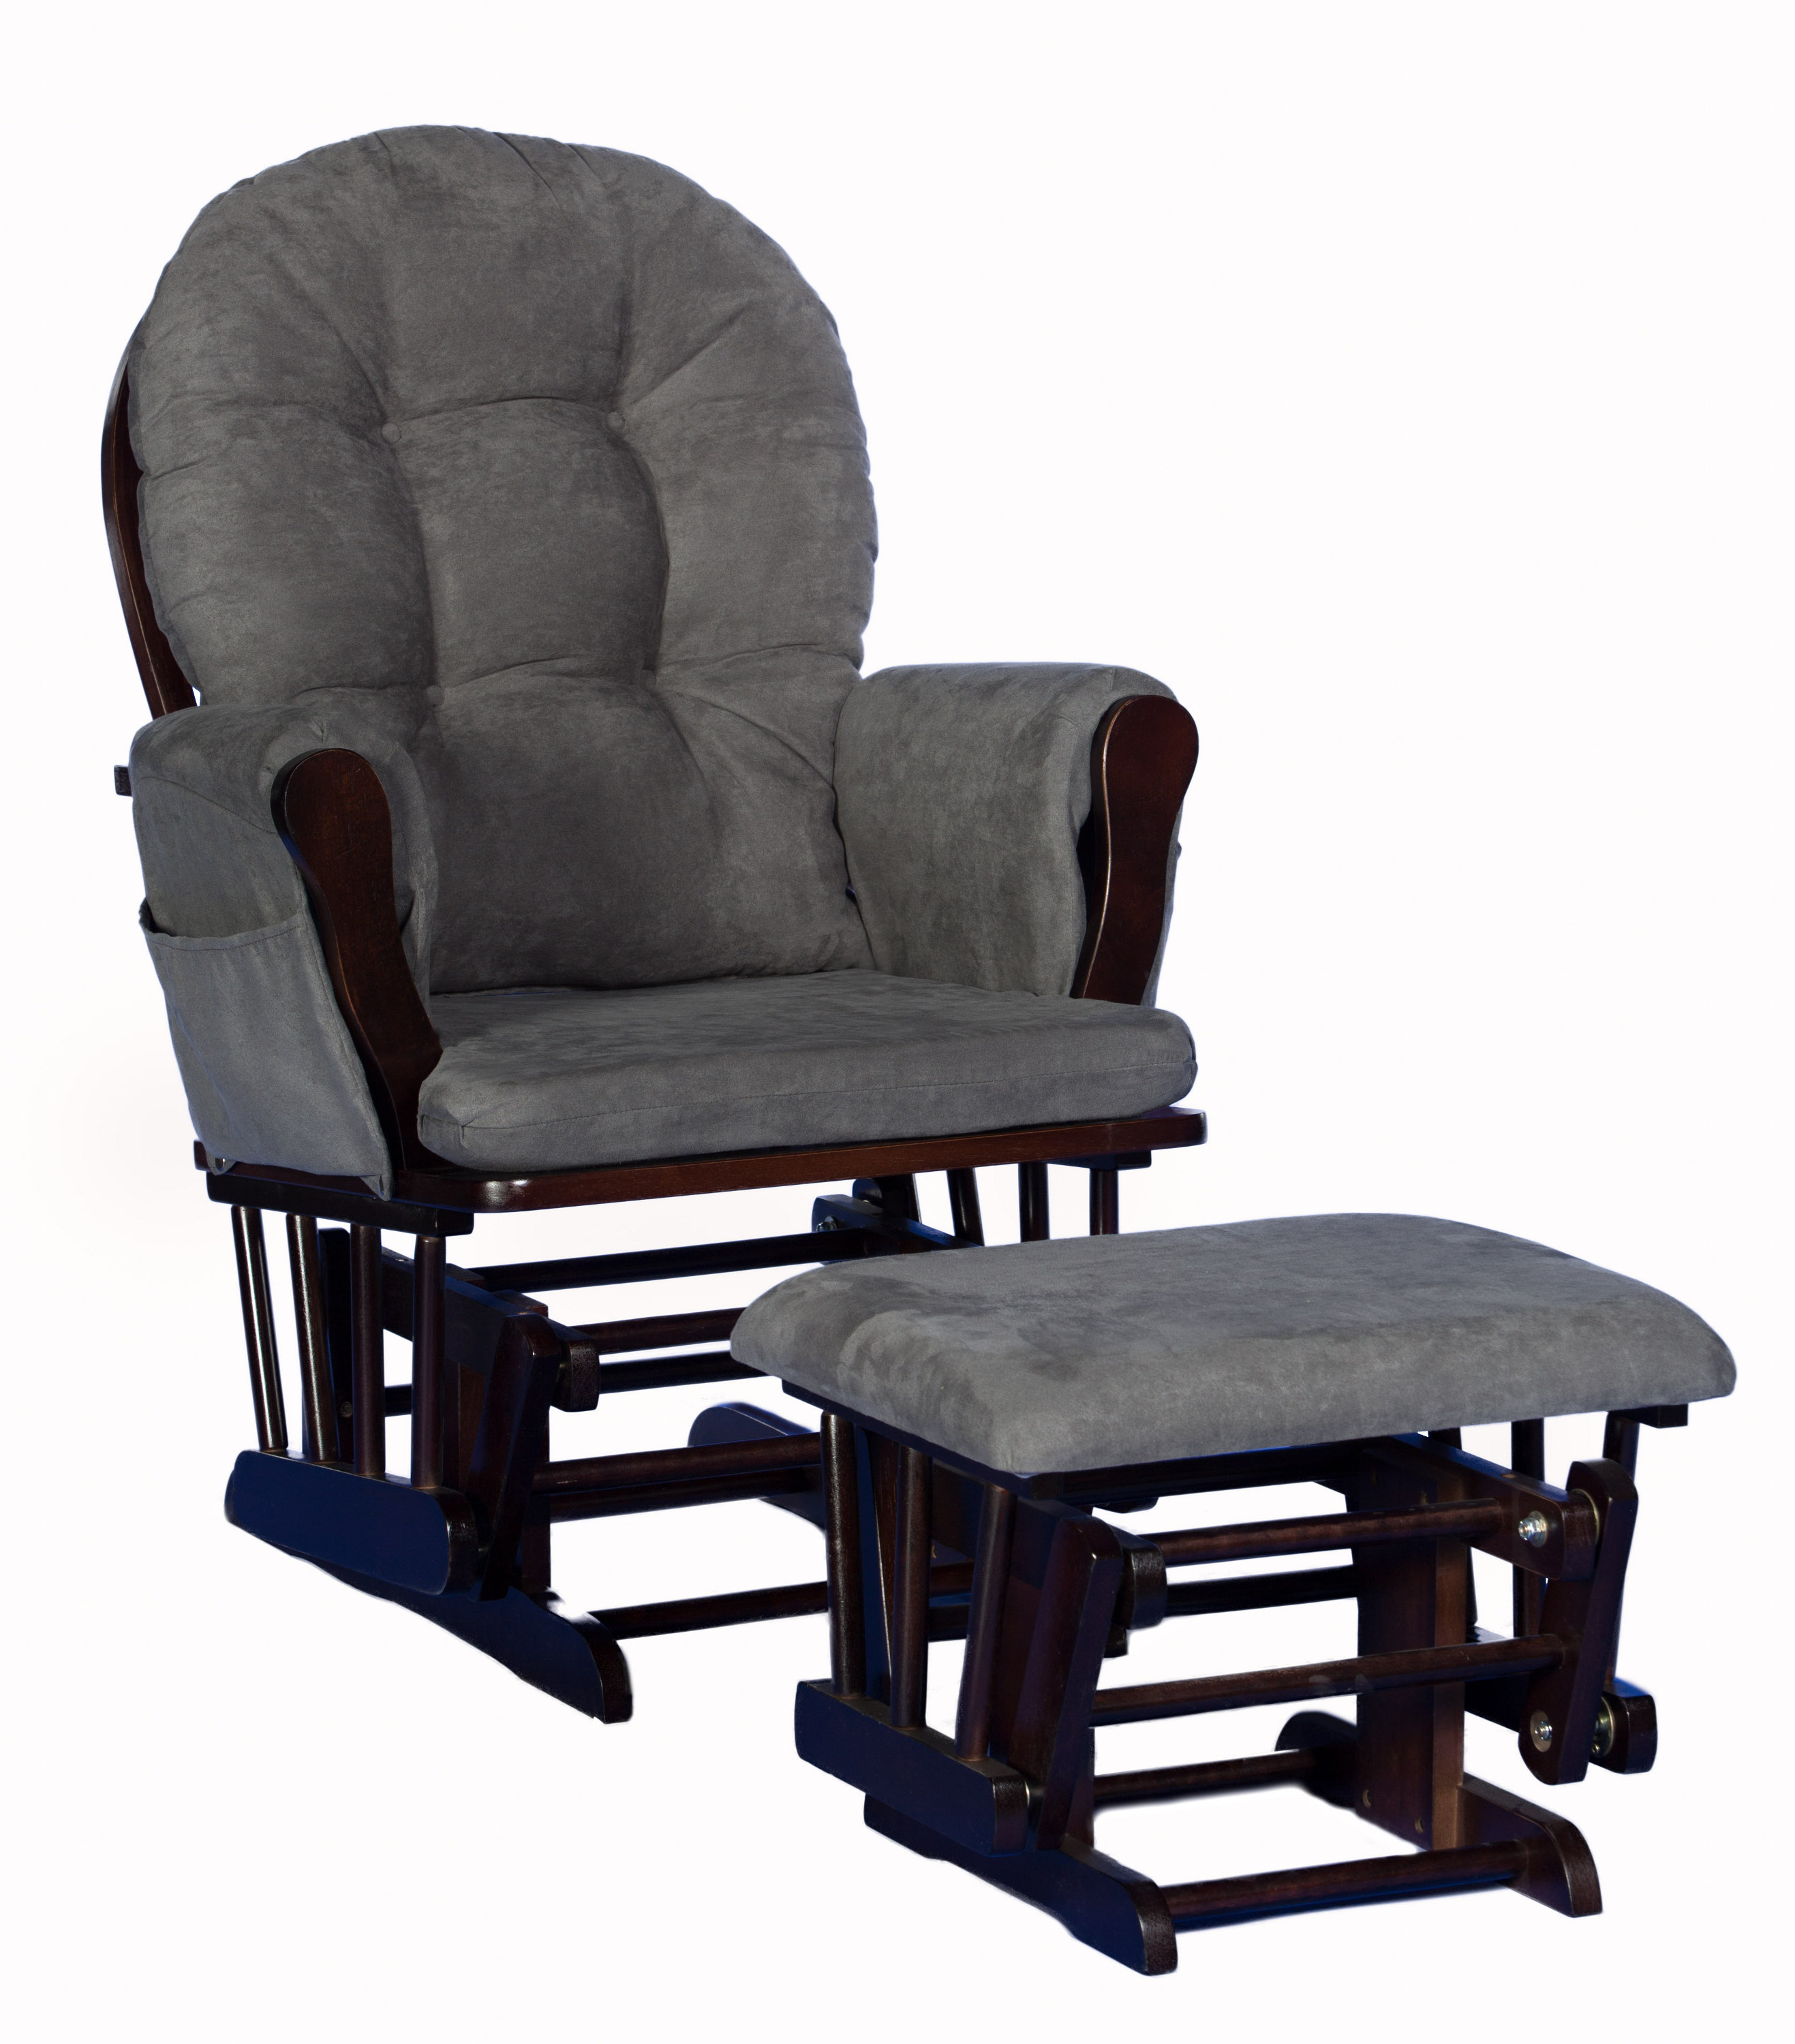 toys r us glider chair dyeing cotton covers stork craft custom hoop and ottoman espresso gray